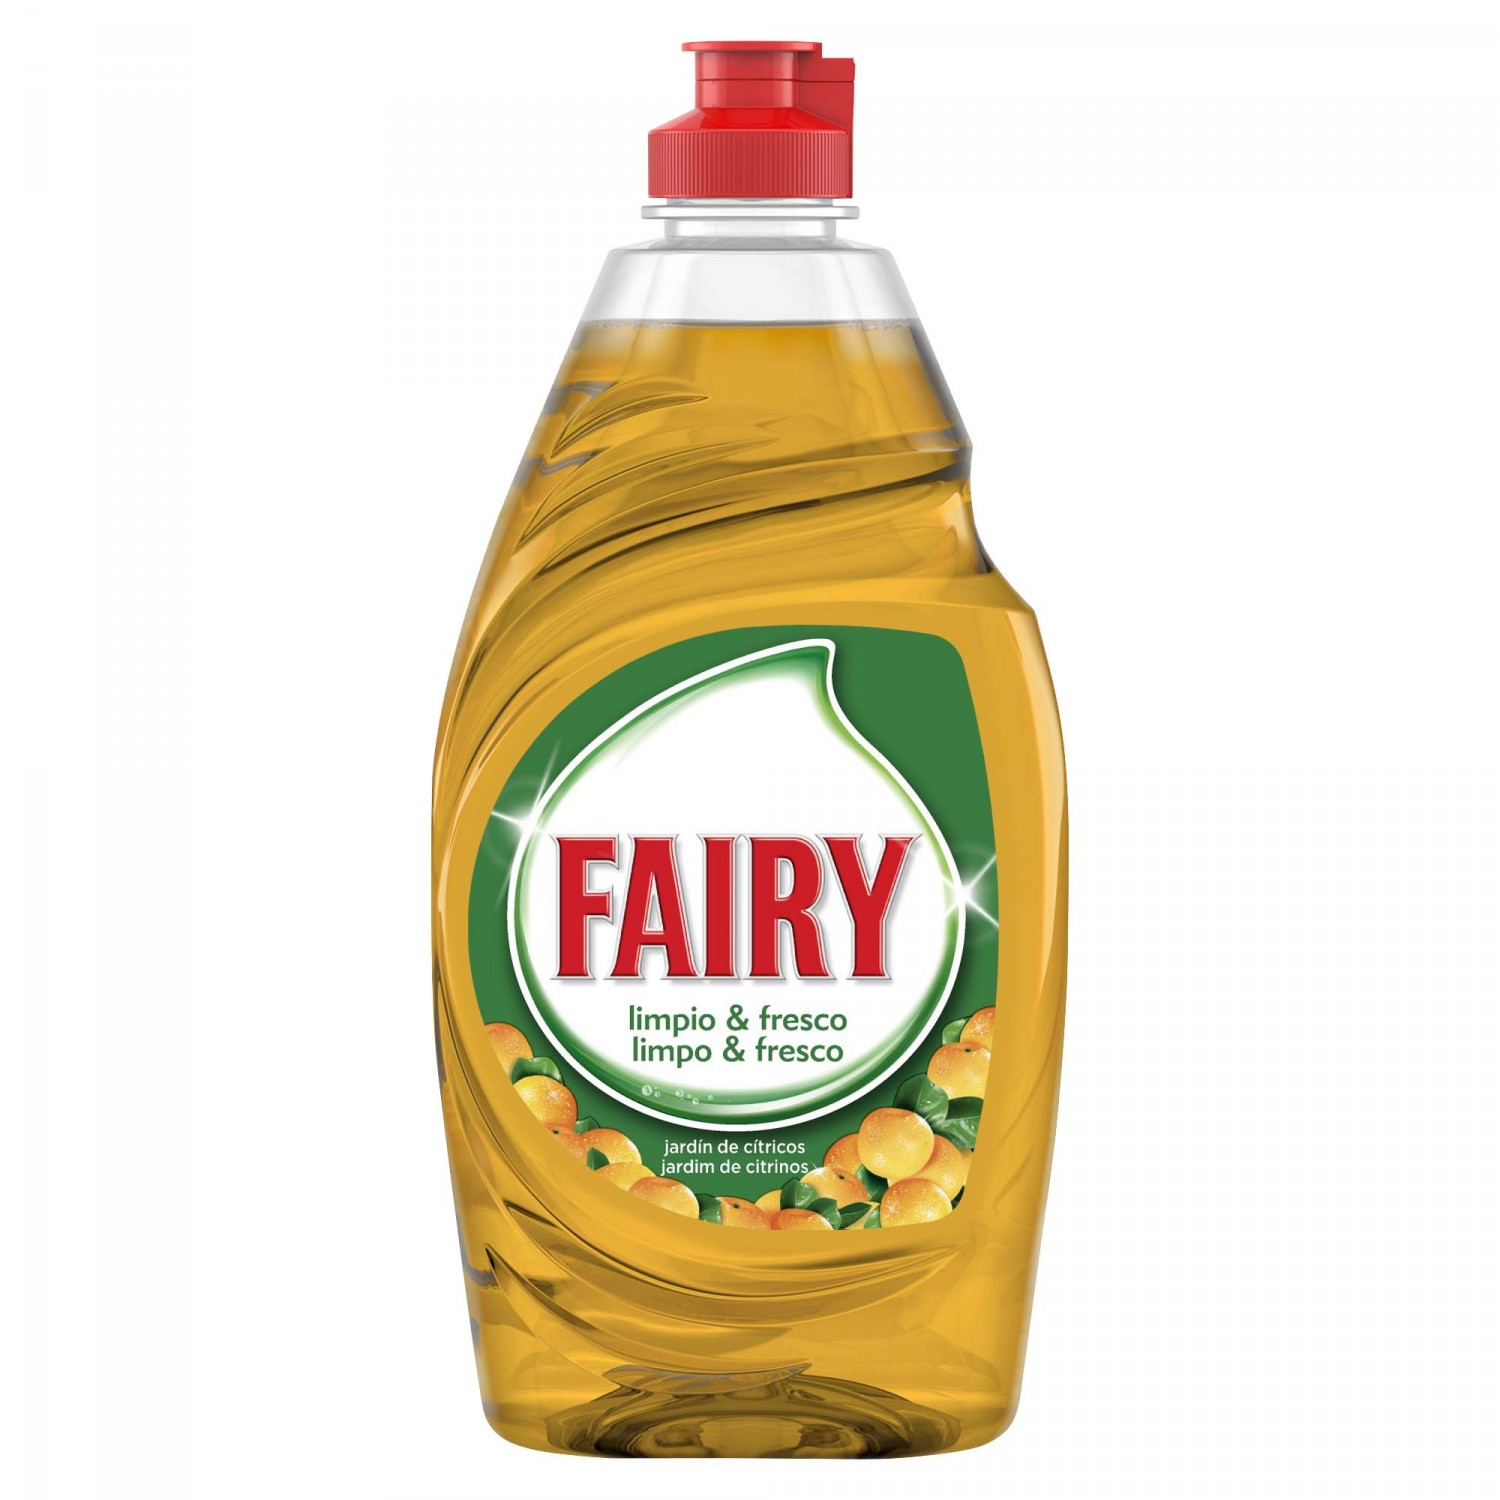 Fairy ultra fresh lavavajillas mano concentrado jardin citricos de 38,3cl. en botella